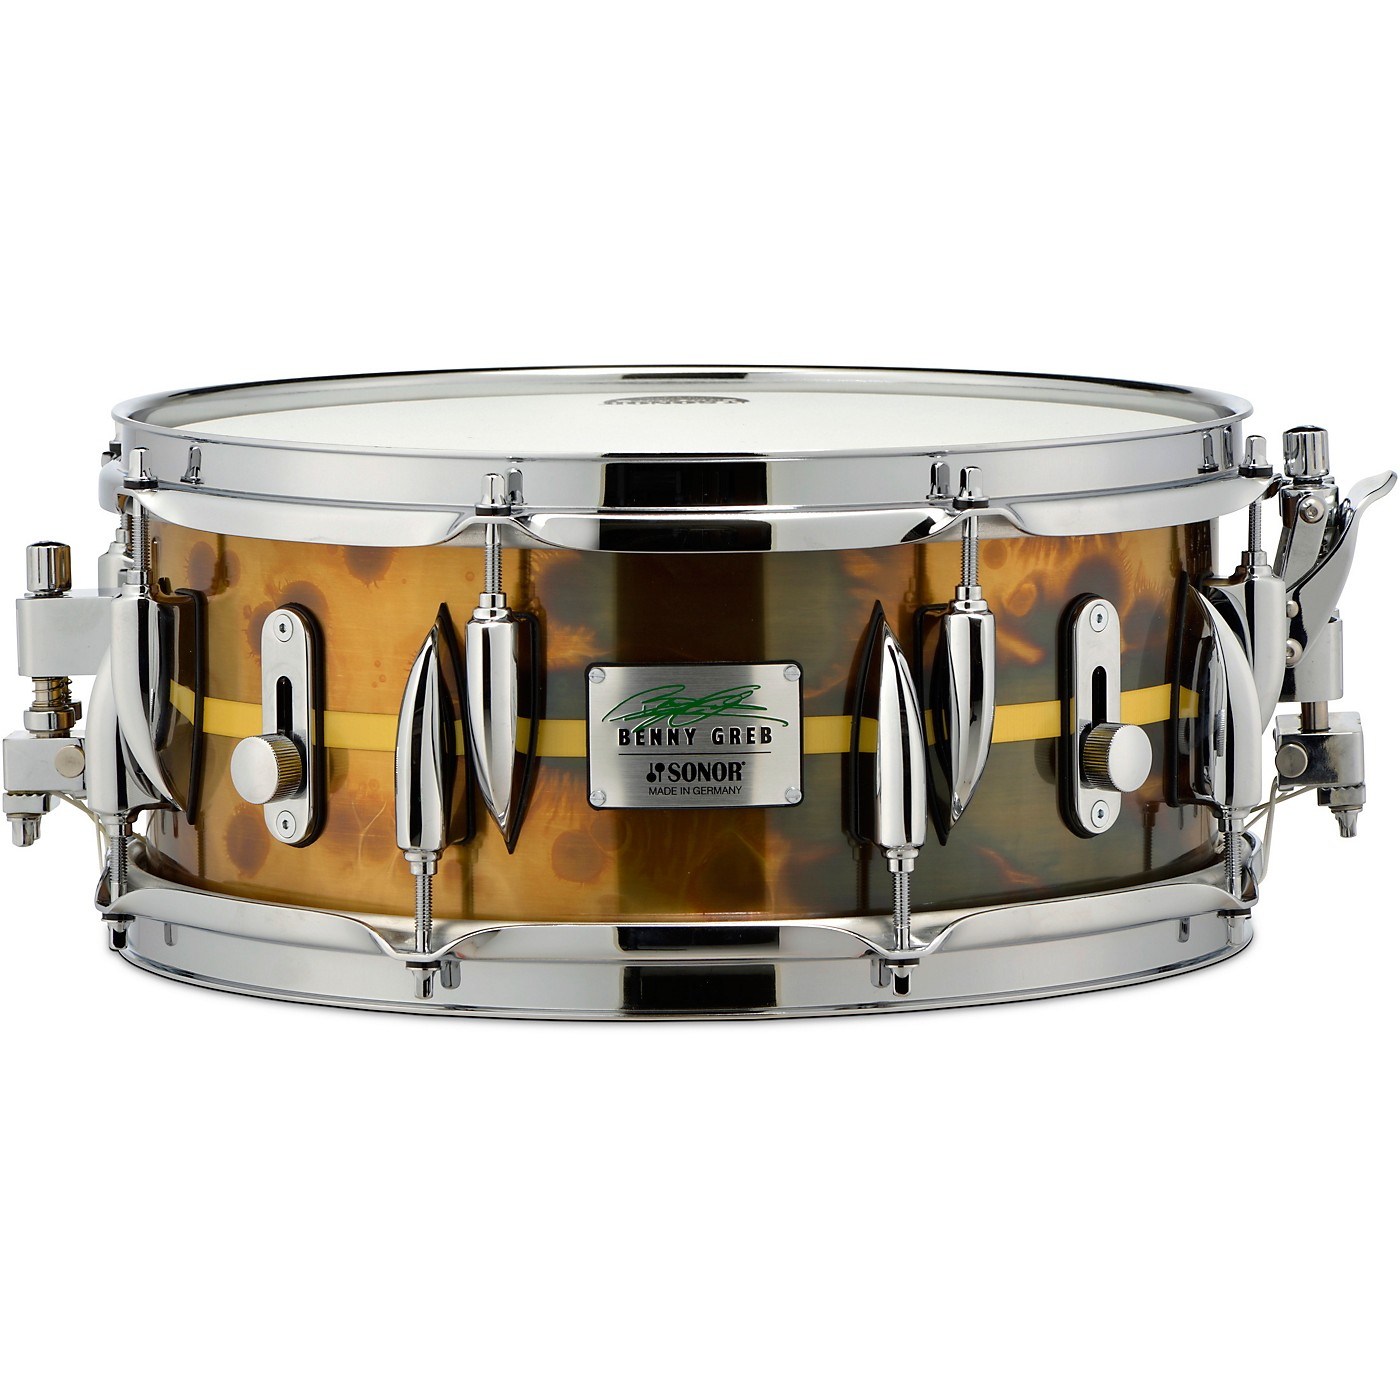 Sonor Benny Greb Brass Signature Snare Drum thumbnail